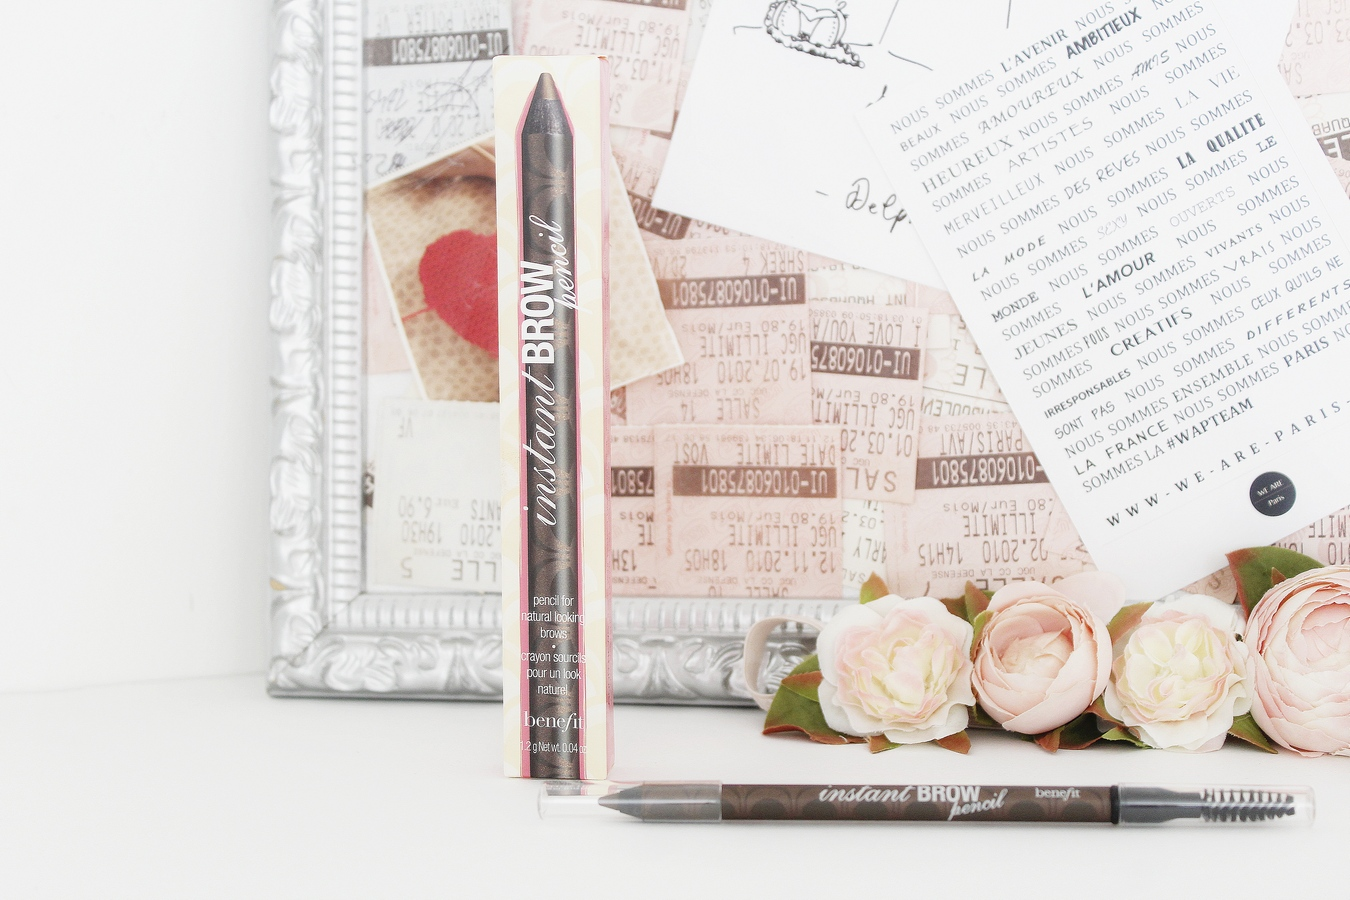 mignonneries du style madame benefit crayon sourcil instant brow pencil